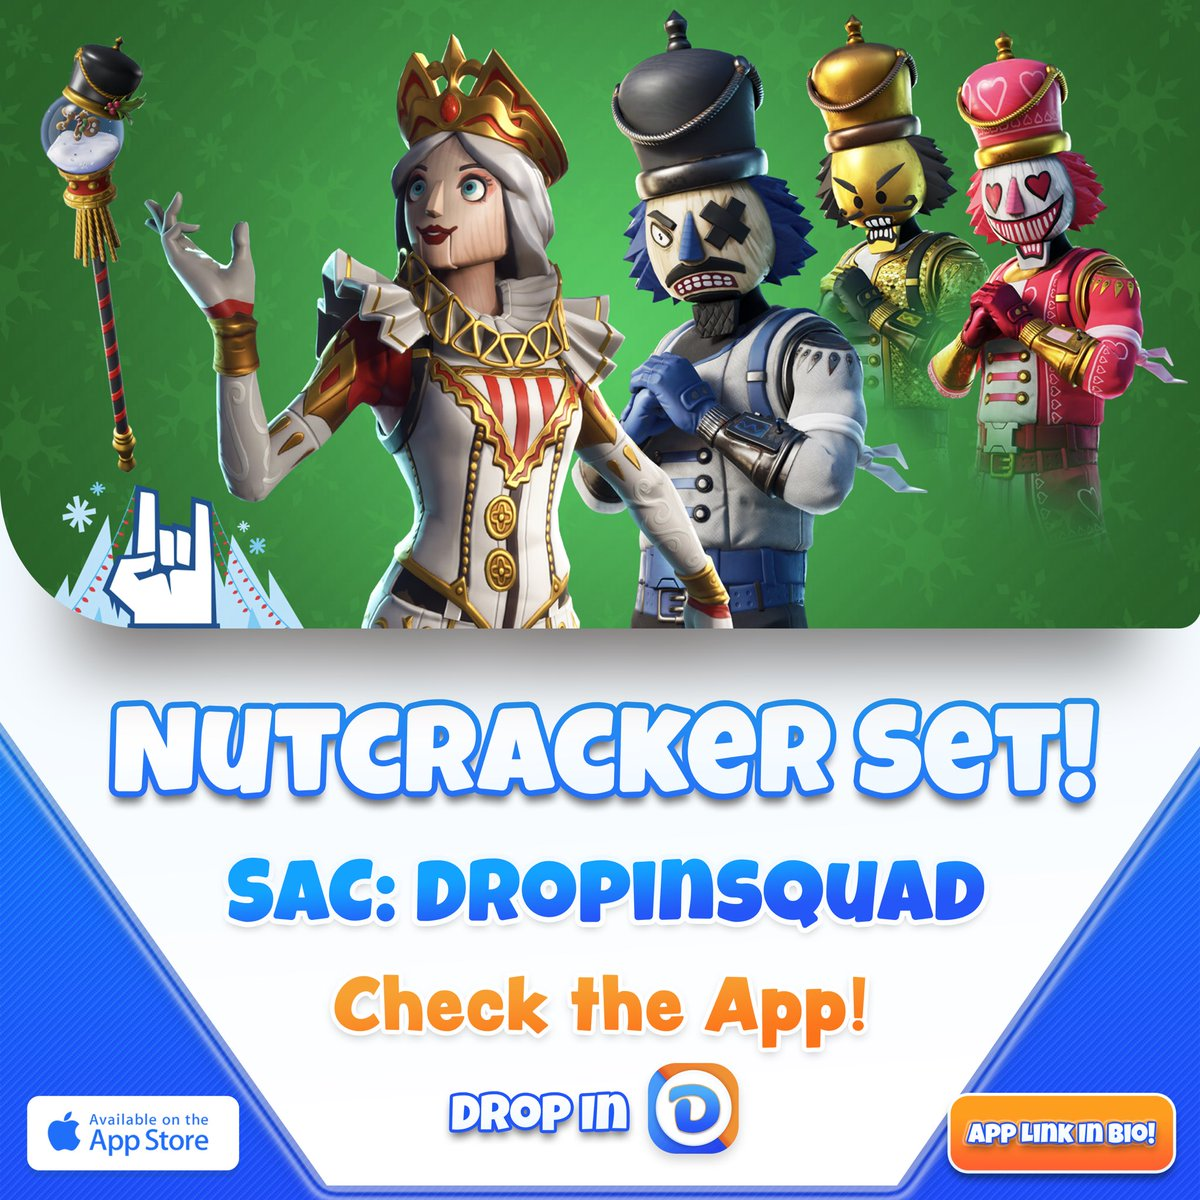 Nutcracker Set  | Use Code DropinSquad if you love our app! - Vote, Share, and Download any skin on the Drop In App! (Link in bio) - #fortnitenutcracker #fortnitedailyshop #winterfestpic.twitter.com/N0OZc8sFyG